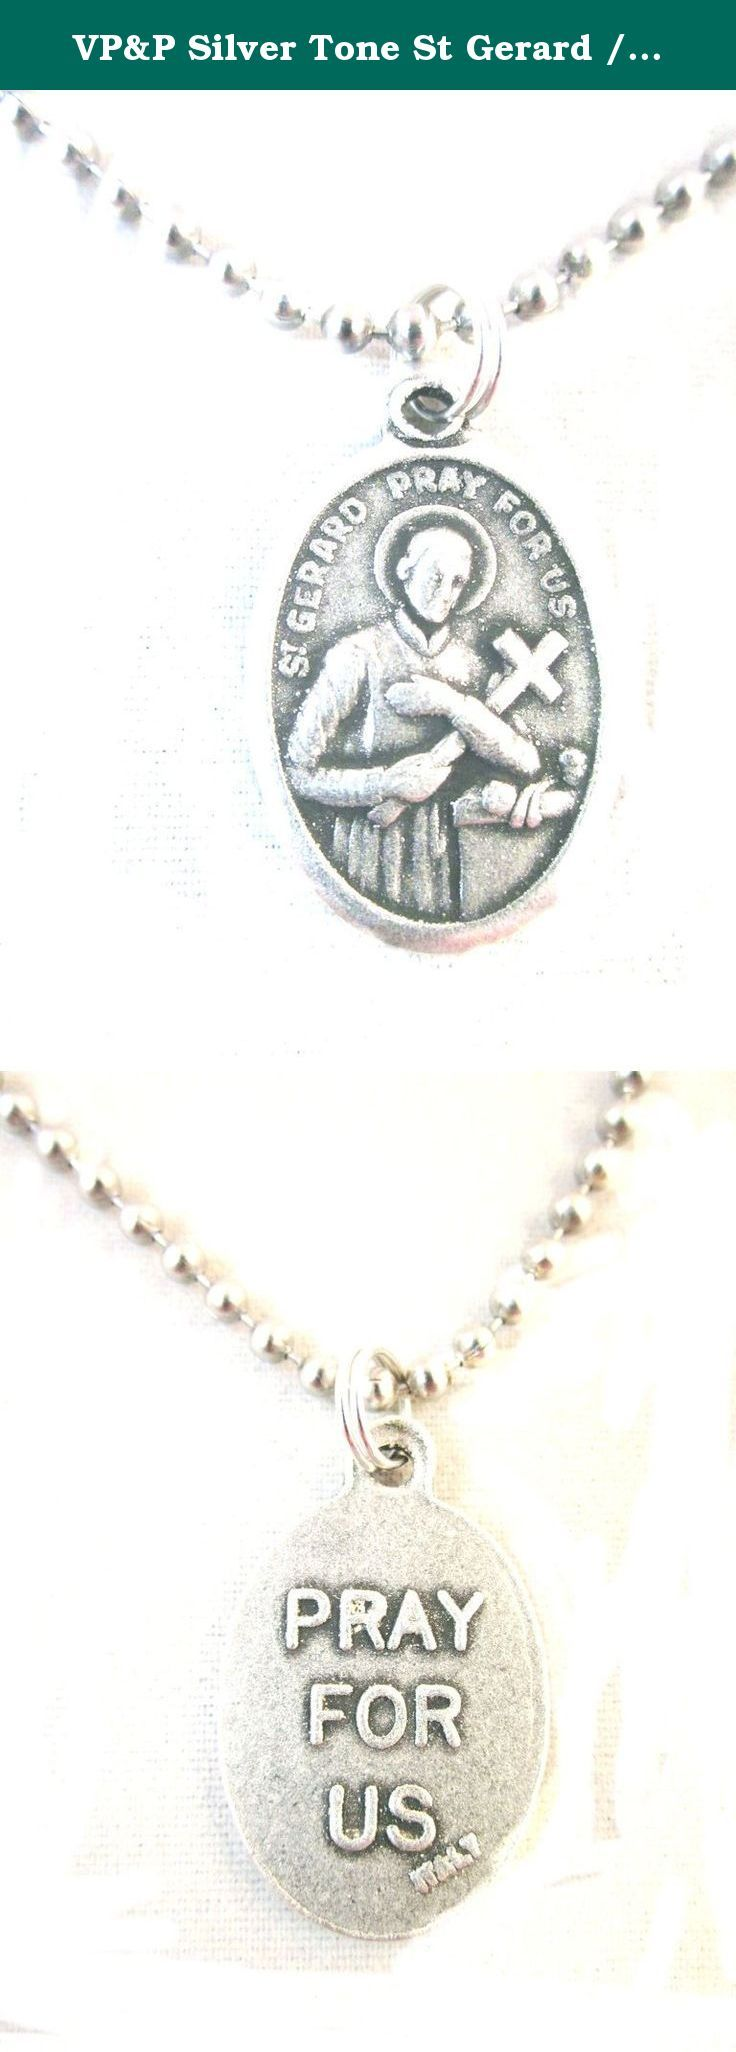 """VP&P Silver Tone St Gerard / Pray for Us Medal Pendant Necklace 24"""" Ball Chain. Die-cast oxidized medal made in Italy, on a 24"""" Stainless Steel Ball chain, made in USA. Patron of Children, Childbirth, Lay brothers, Mothers, Unborn children, Falsely accused people. Prayer card included."""